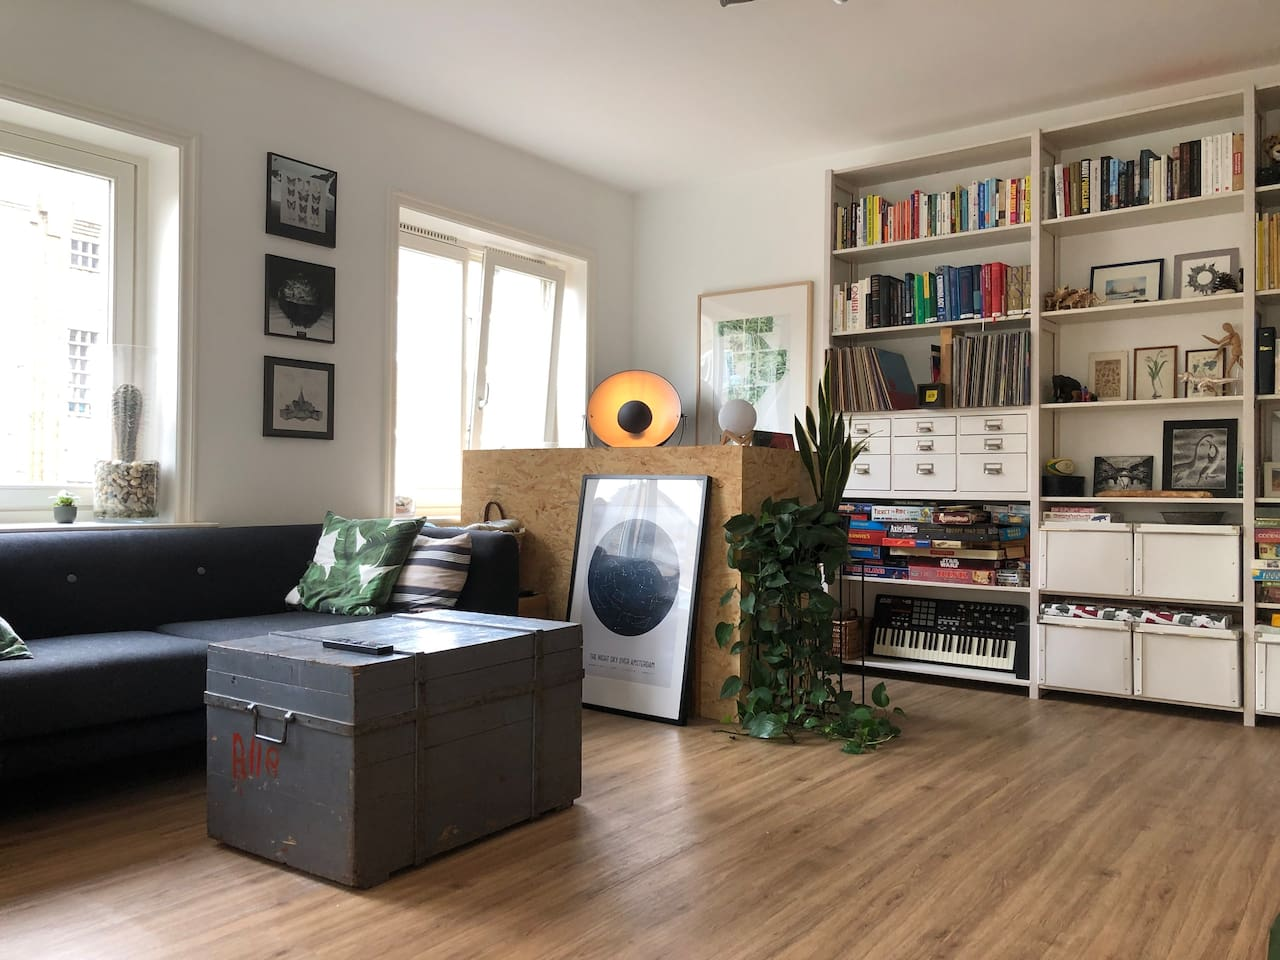 Enjoy a comfortable, stylish 'jungle' in the middle of the city =). We've lived here for 5+ years now so we've pretty much thought of everything!